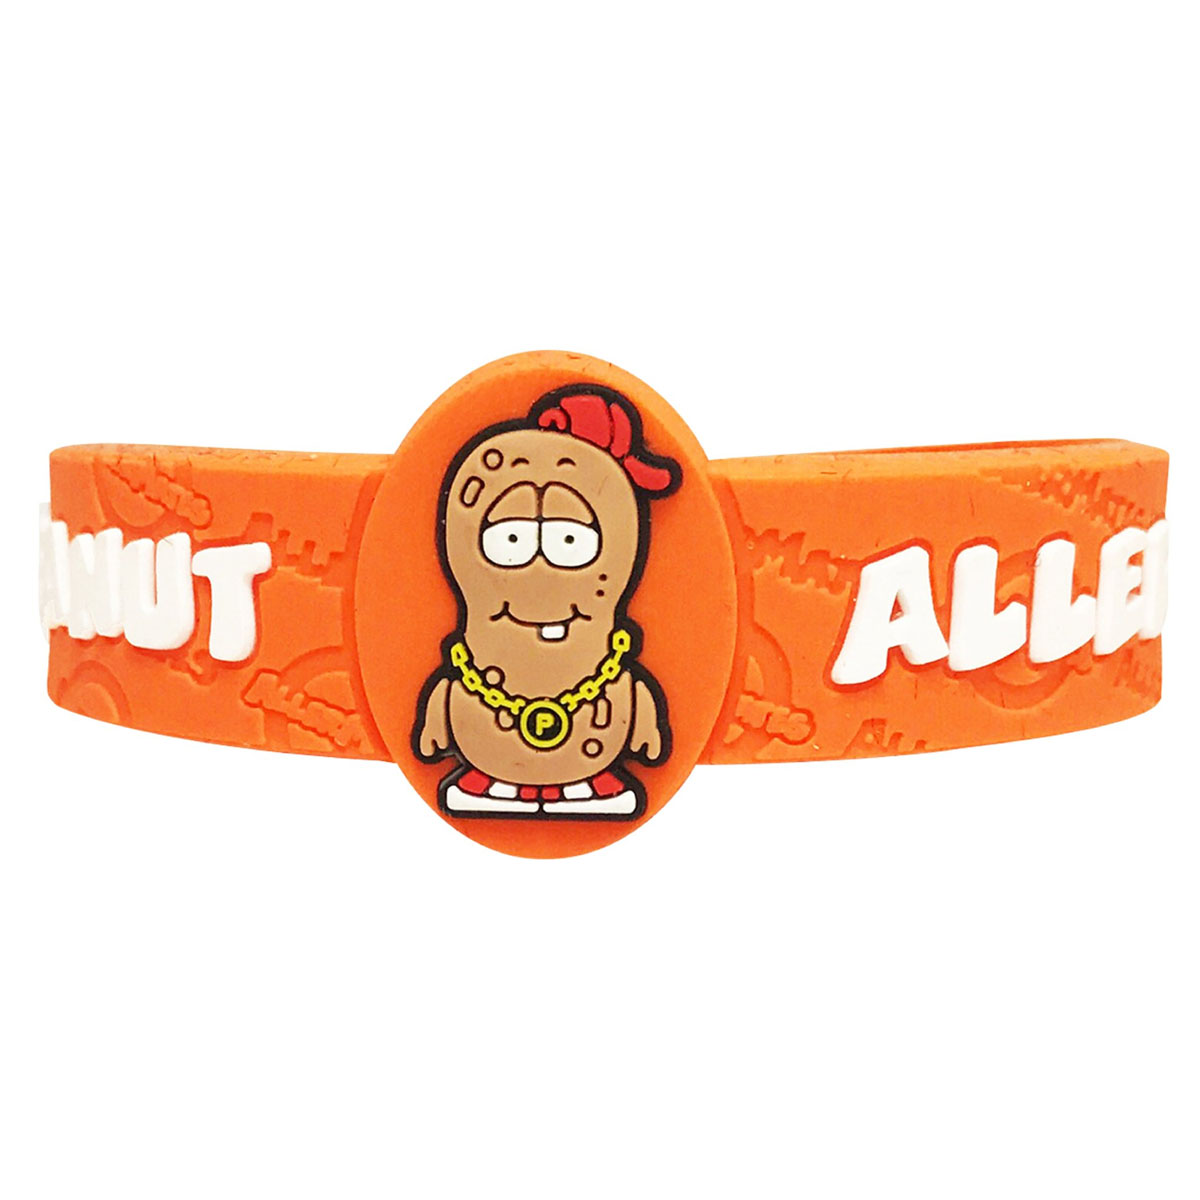 Children's Medical Alert Bracelet for Peanut Allergies. AWABR10001